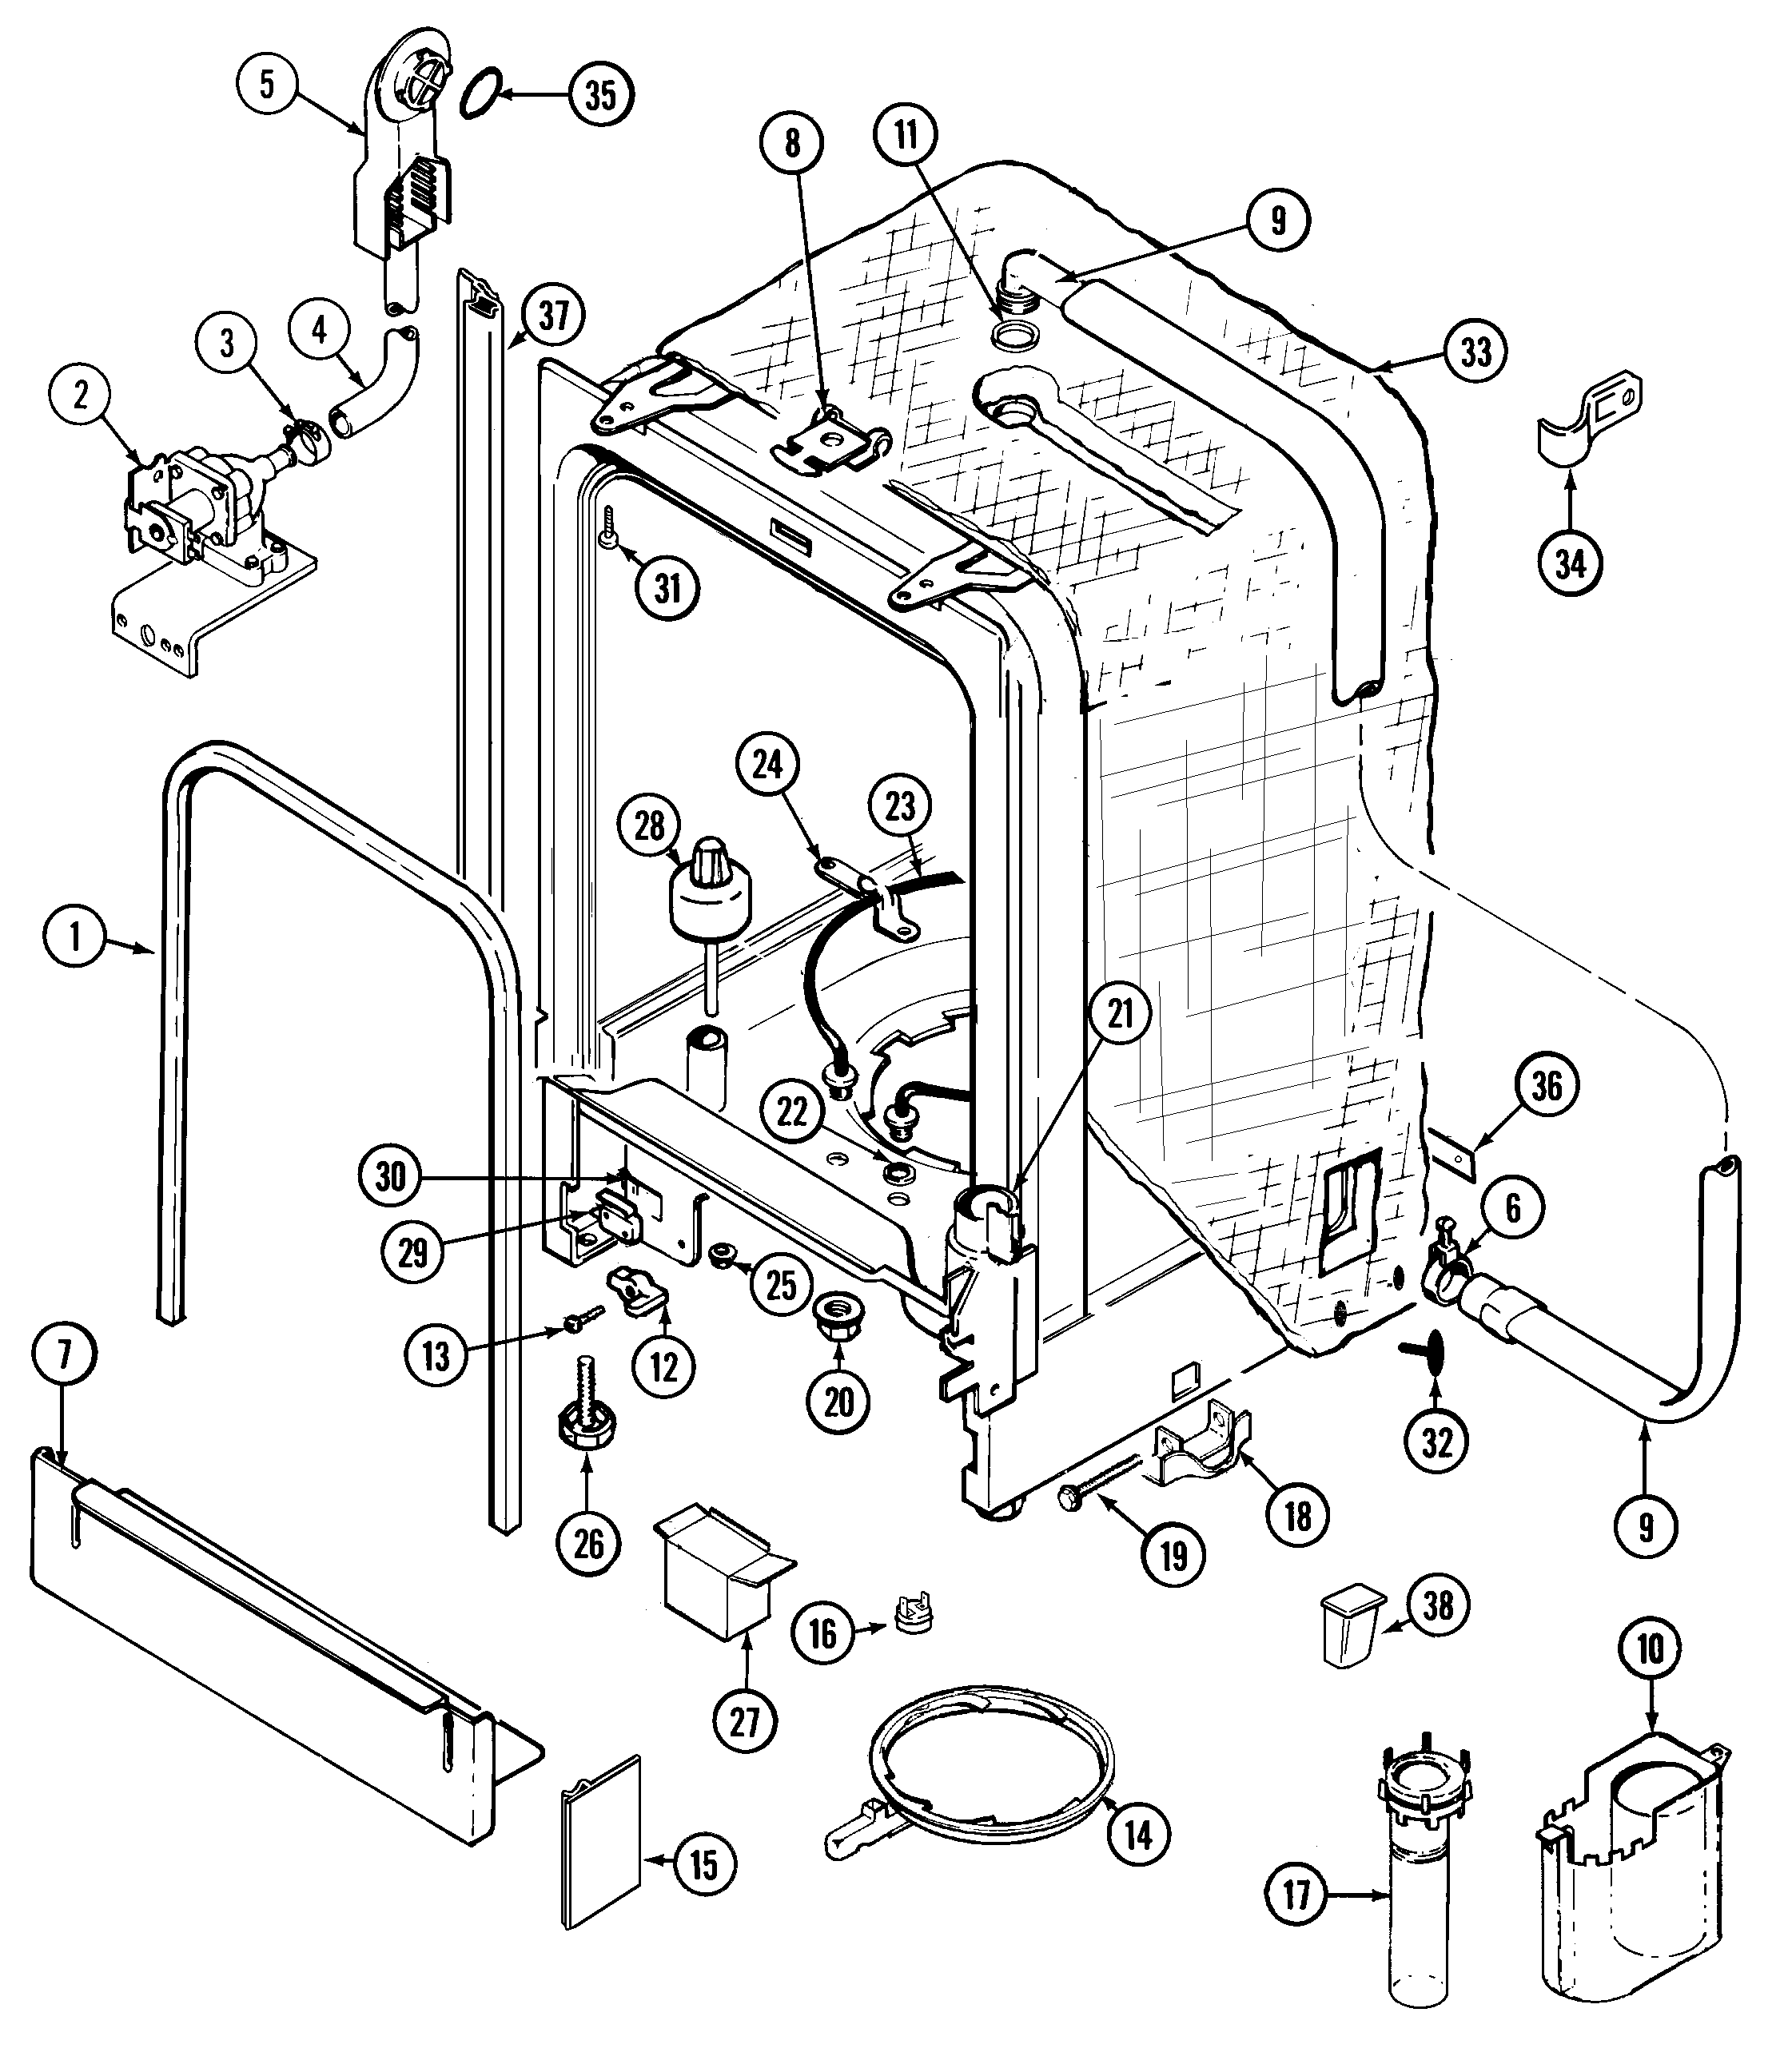 Dishwasher parts diagram wiring diagrams schematics maytag mdb6000awa timer stove clocks and appliance timers dishwasher parts diagram dishwasher parts diagram ge mdb6000awa pooptronica Gallery